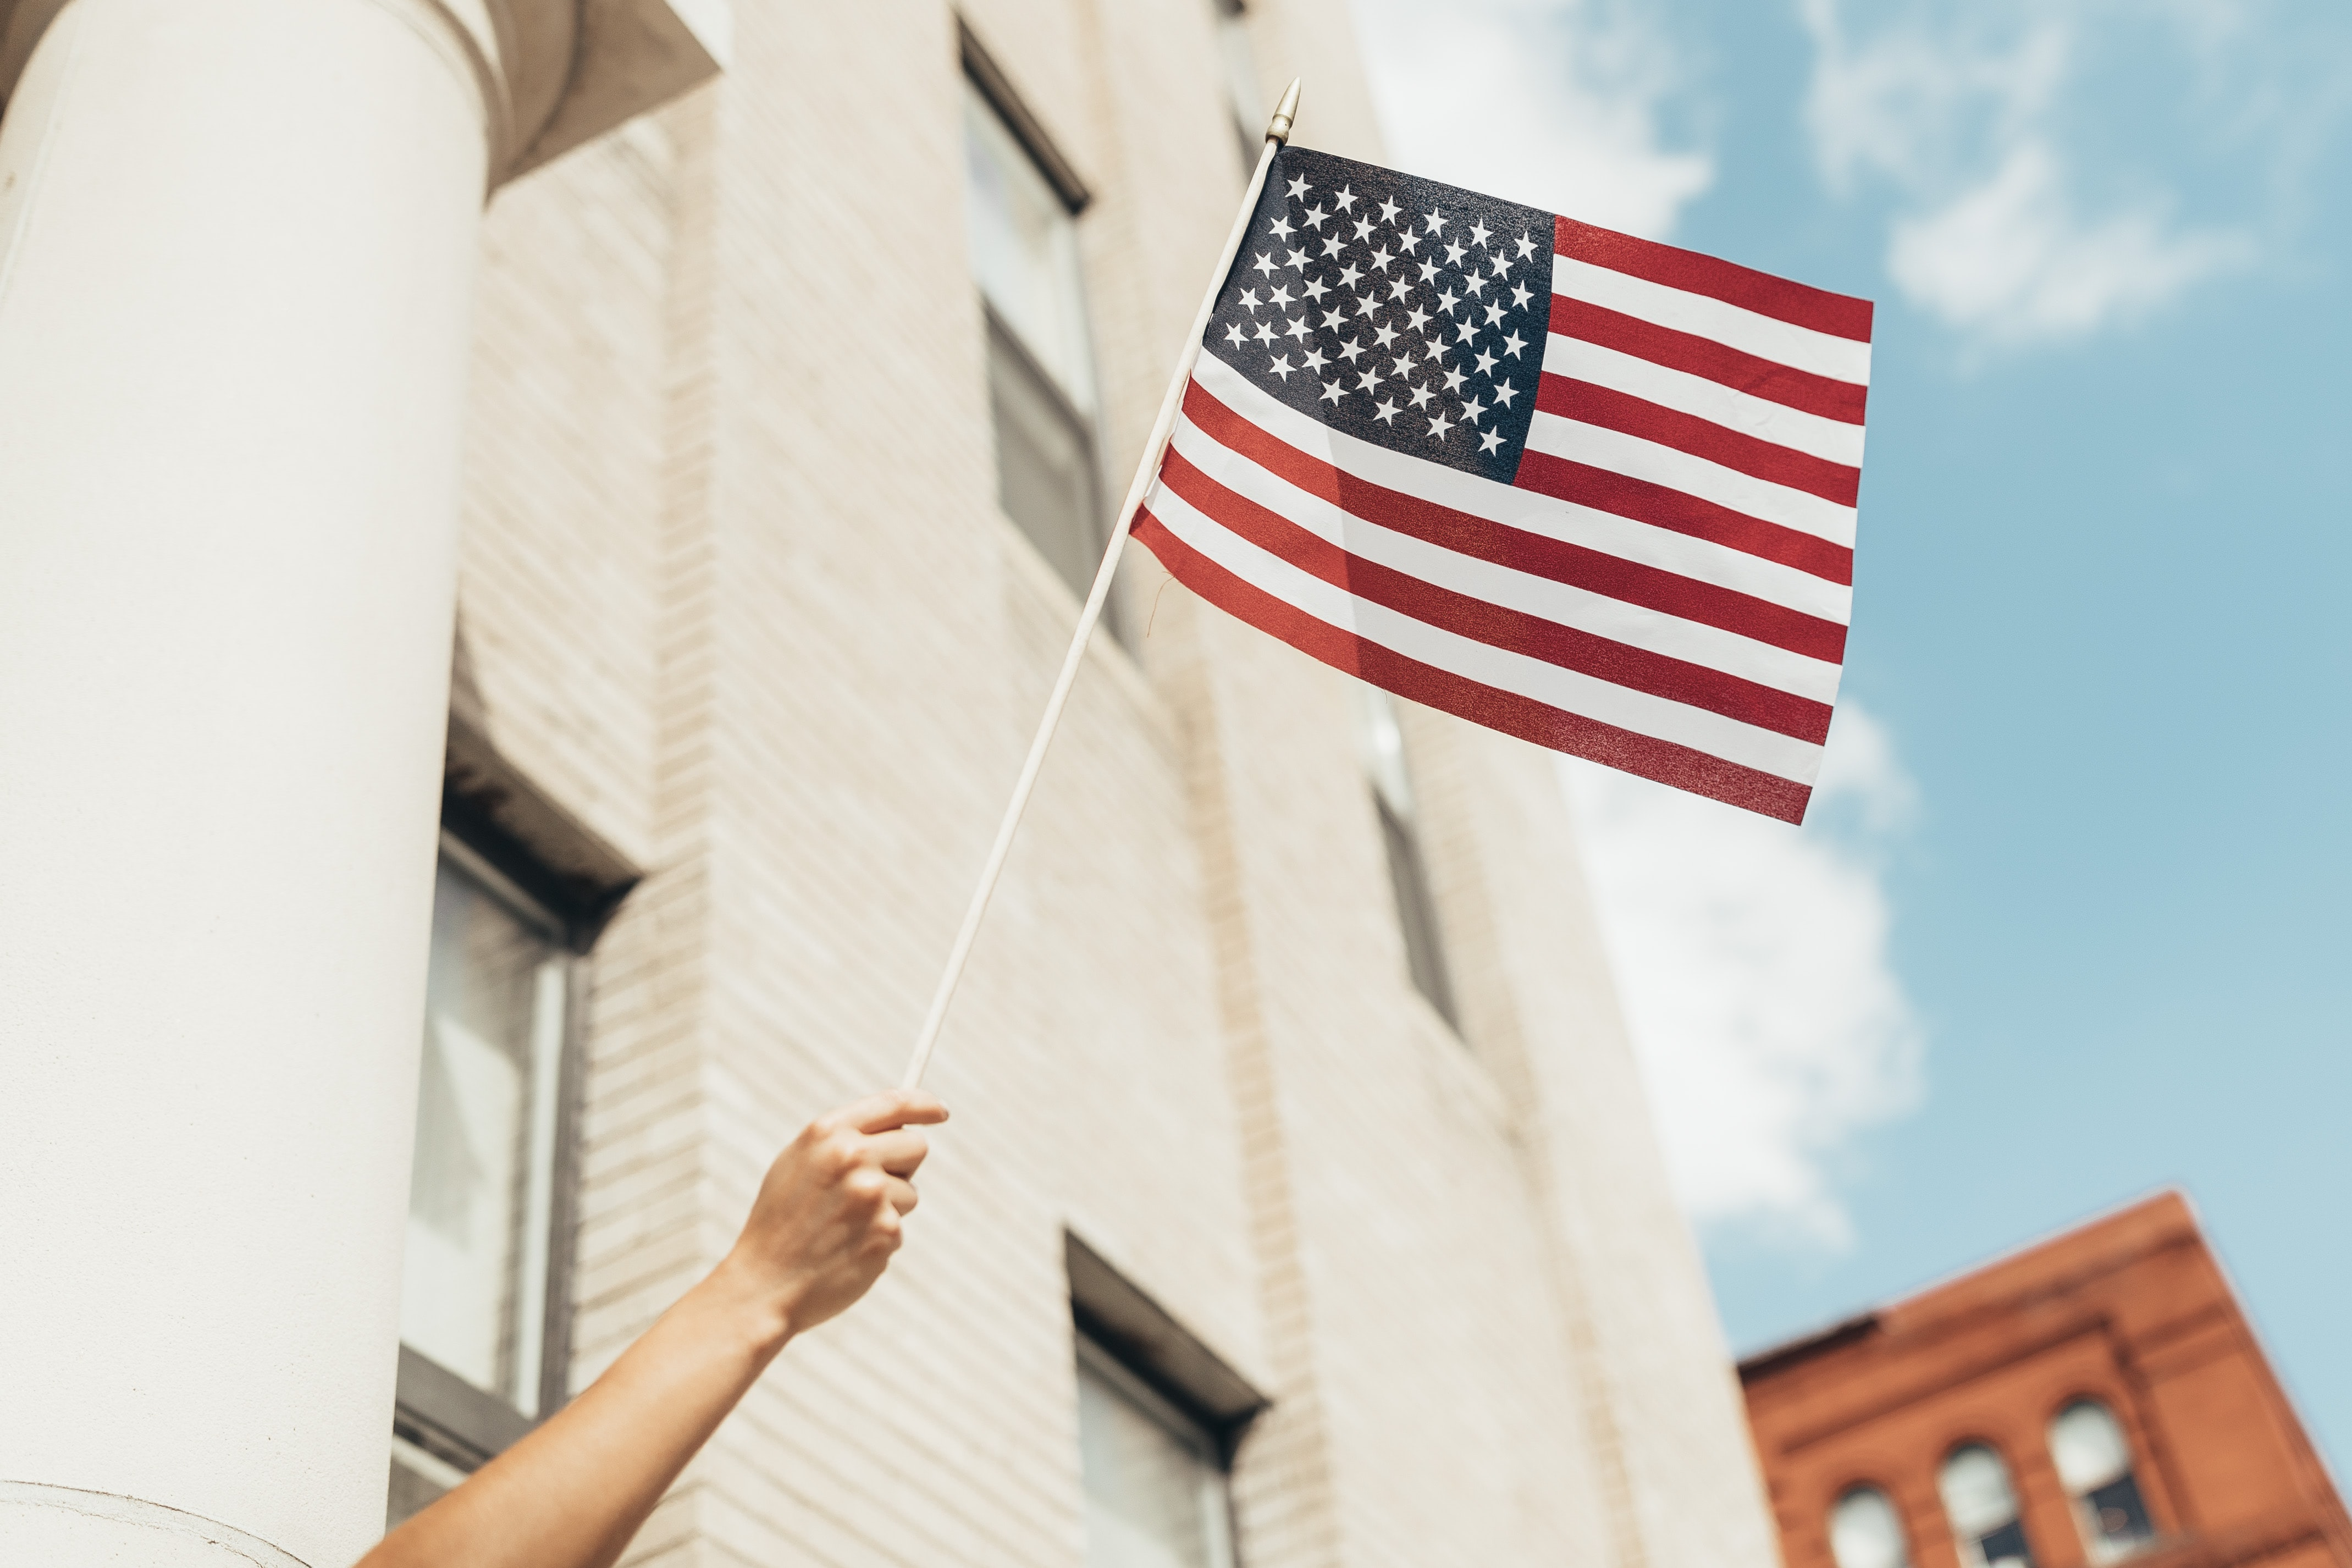 A hand holds an American flag to the sky. Photo courtesy of Paul Weaver on Unsplash.